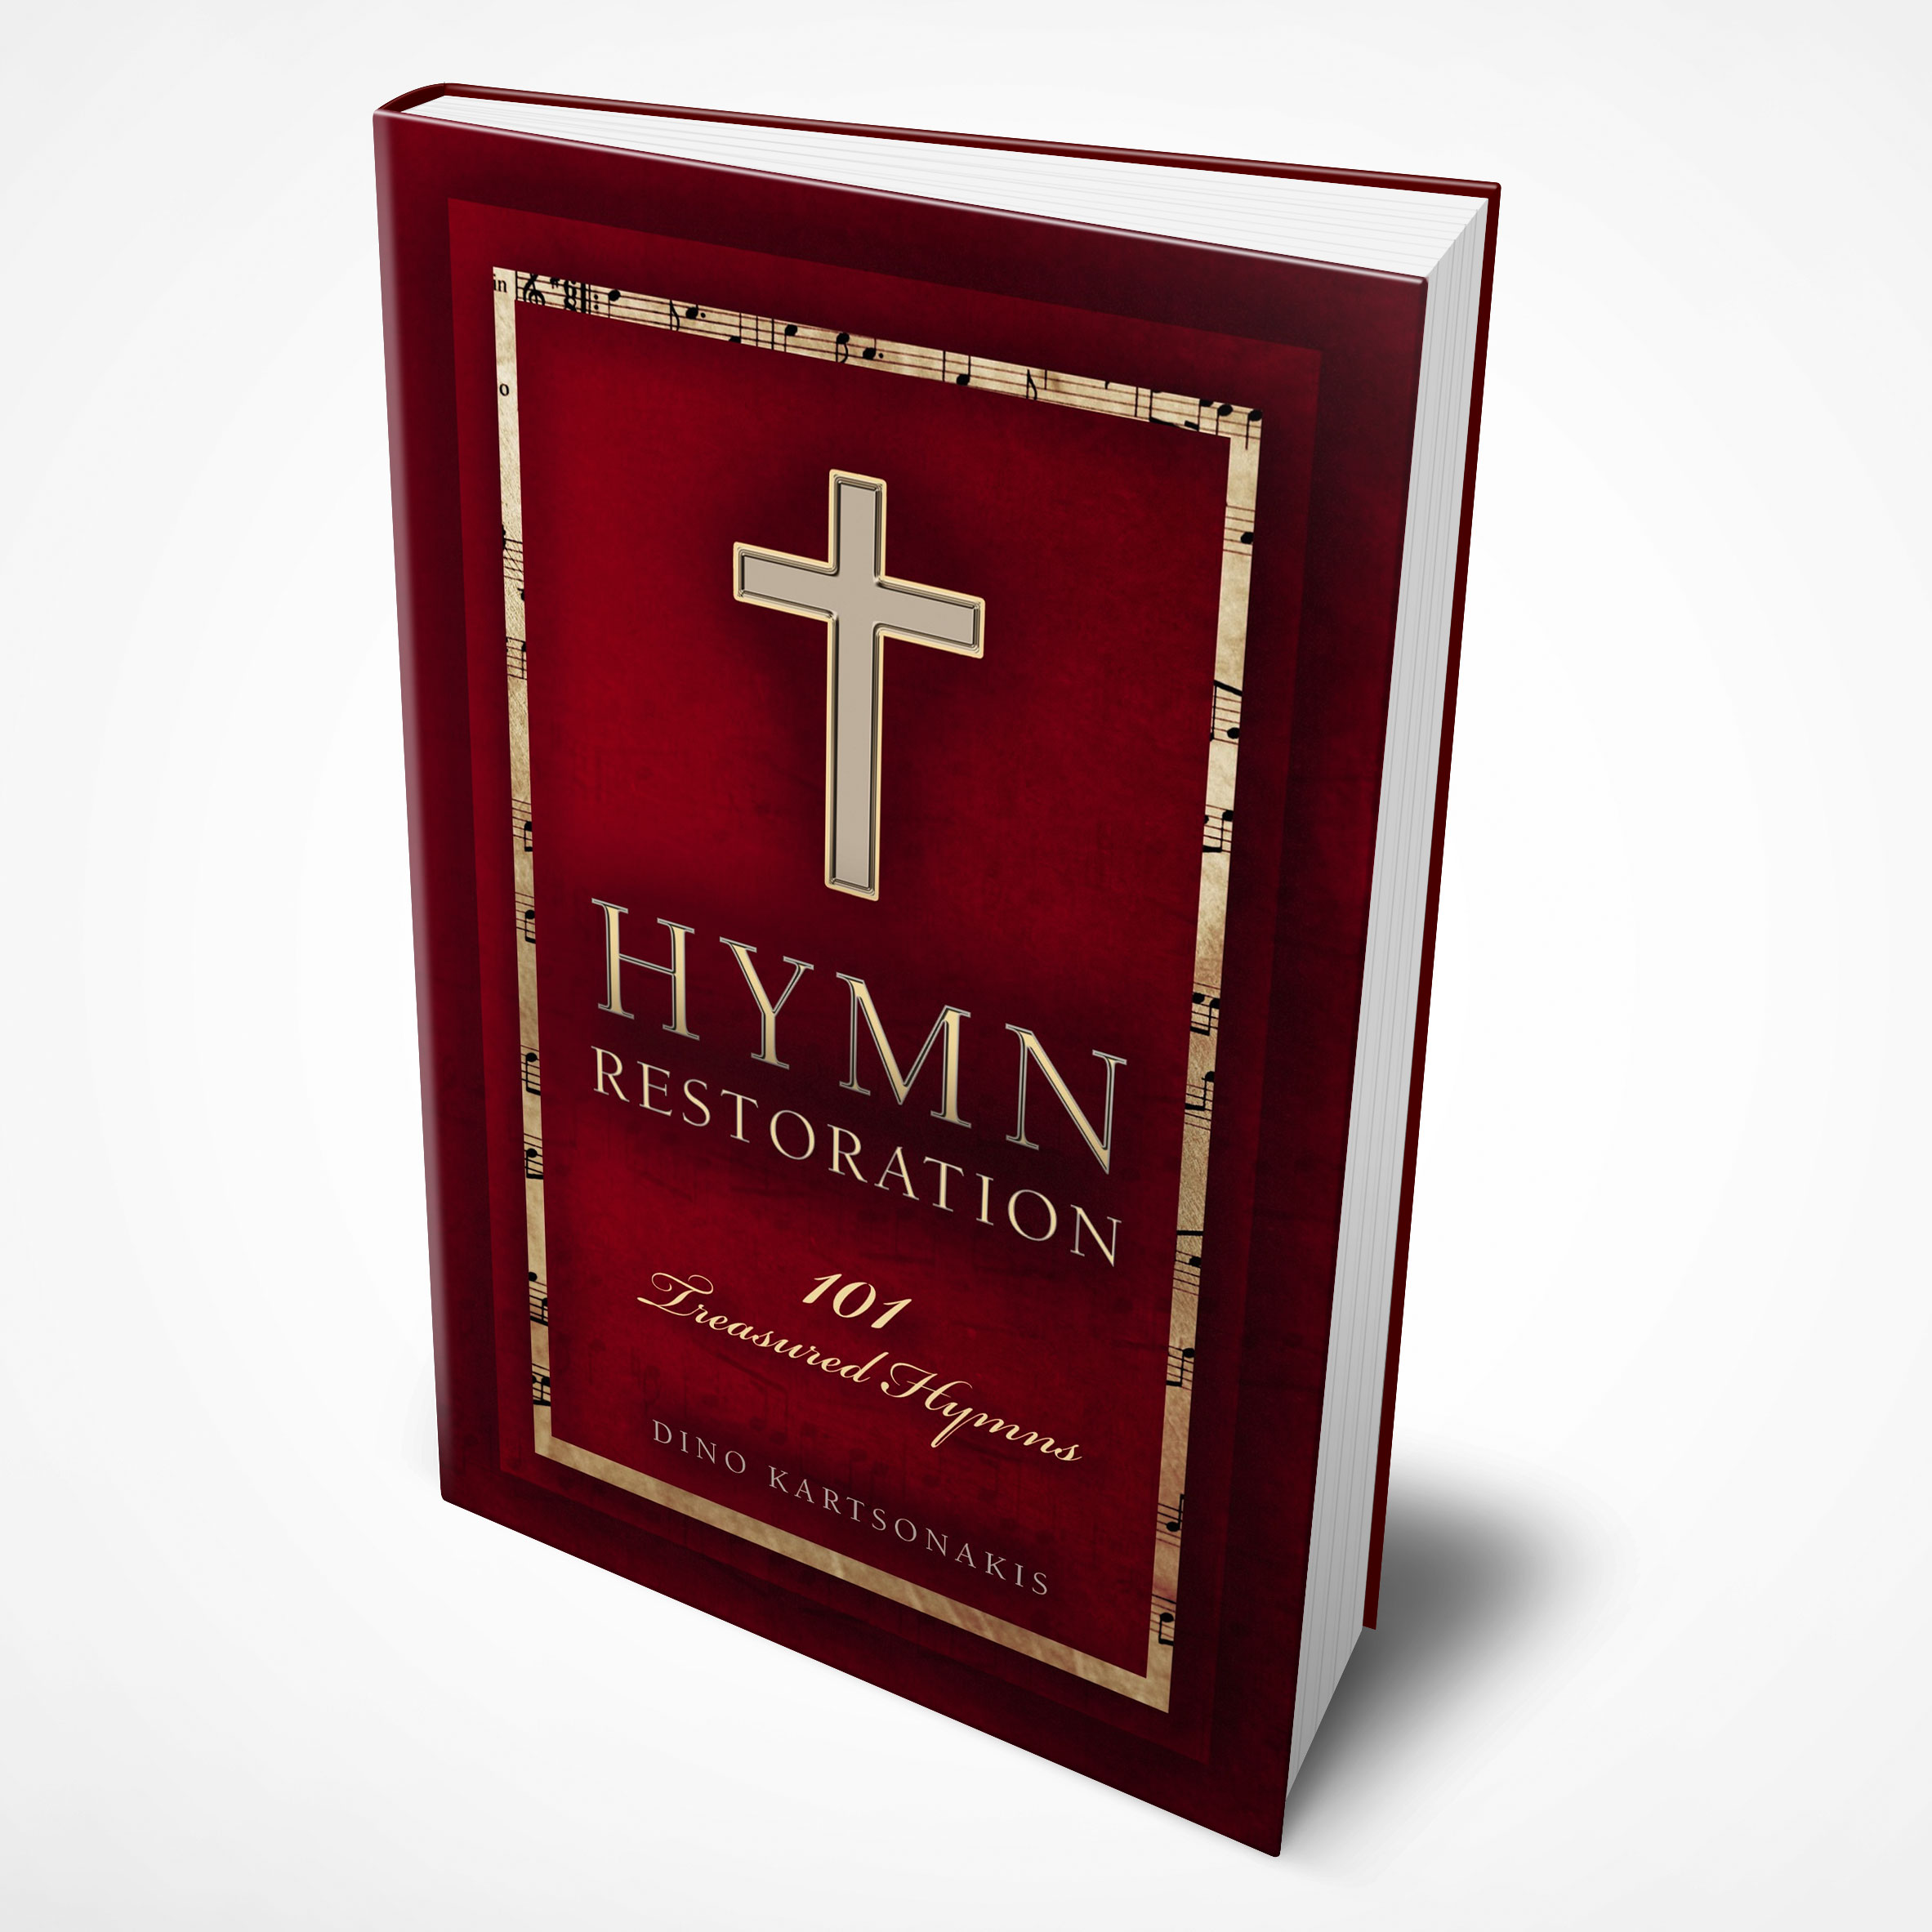 Hymn Restoration: 101 Treasured Hymns (coming soon) - Special Pre-Publication pricing